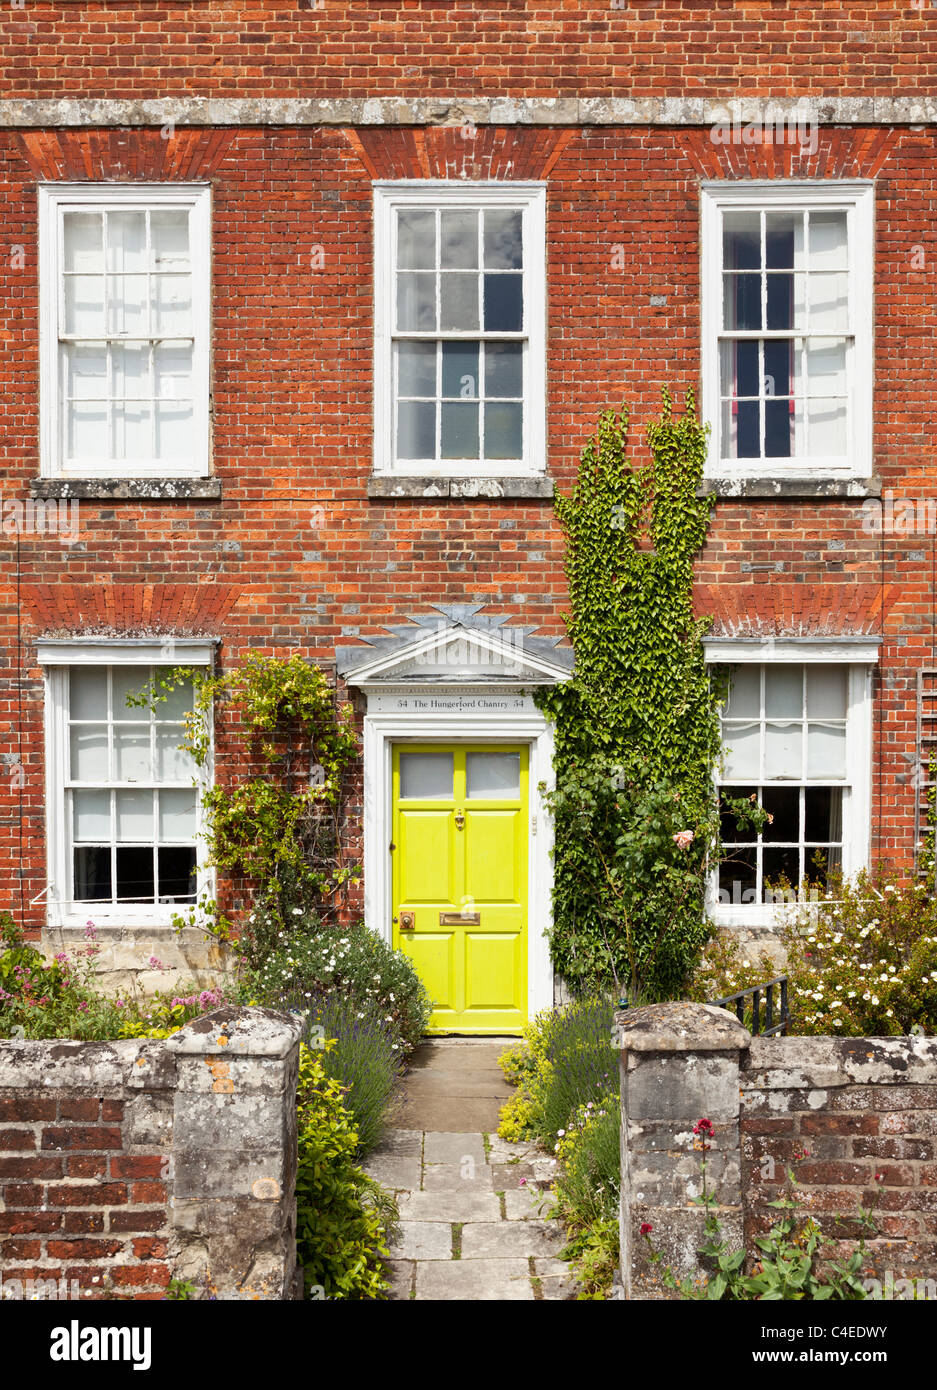 Georgian town house, The Hungerford Chantry, Cathedral Close, Salisbury, Wiltshire, England UK - Stock Image